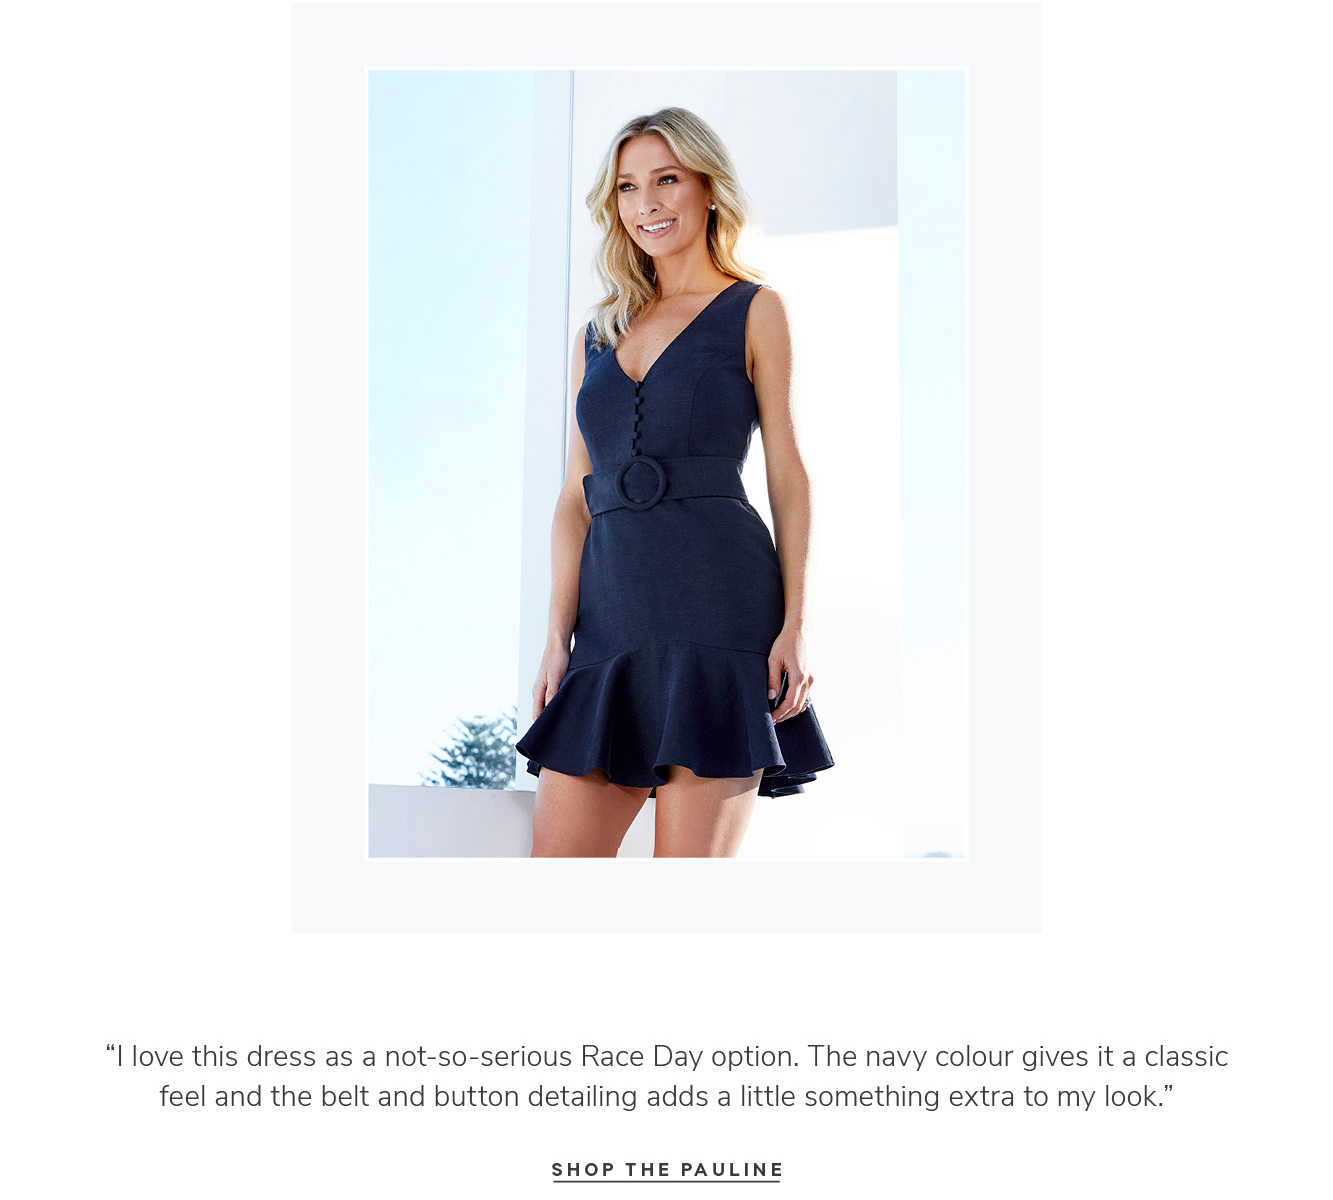 """""""I love this dress as a not-so-serious Race Day option. The navy colour gives it a classic feel and the belt and button detailing adds a little something extra to my look.†SHOP THE PAULINE"""